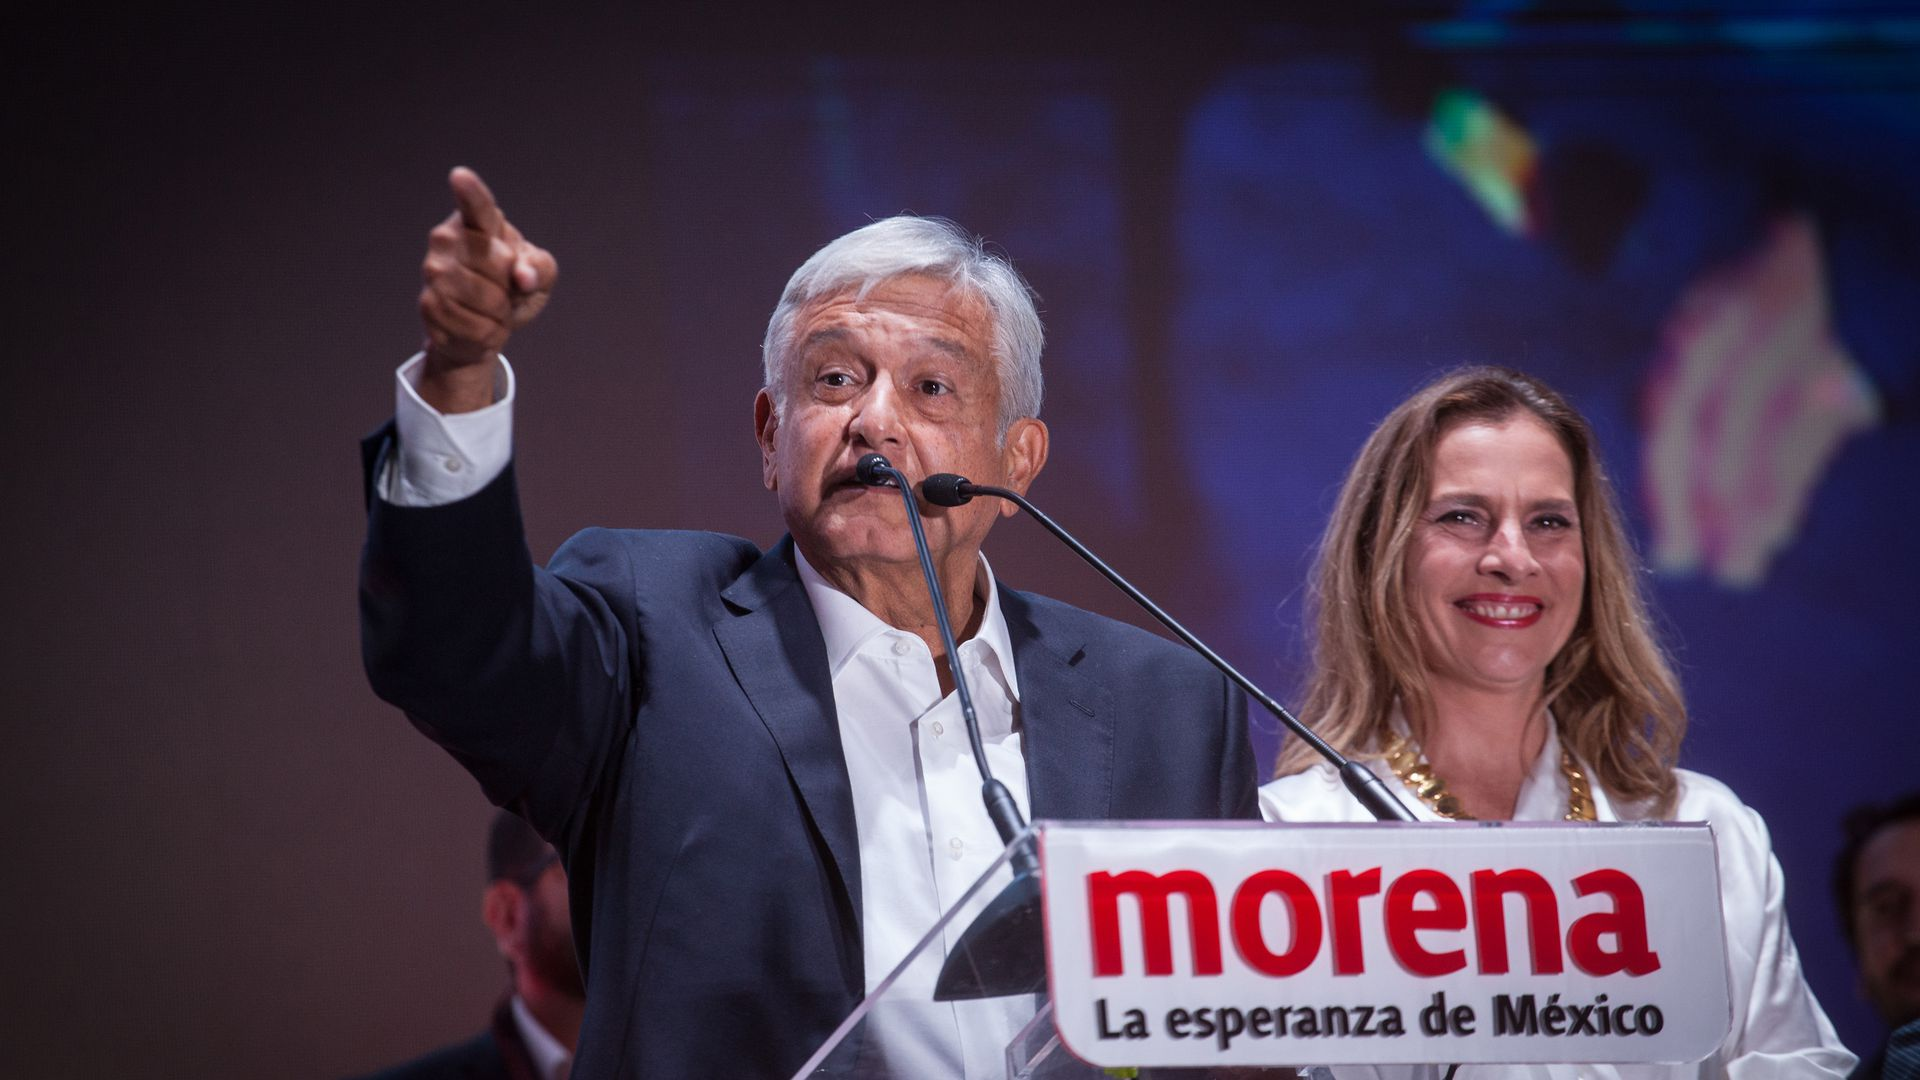 Mexican president Andres Miguel Lopez Obrador after being elected